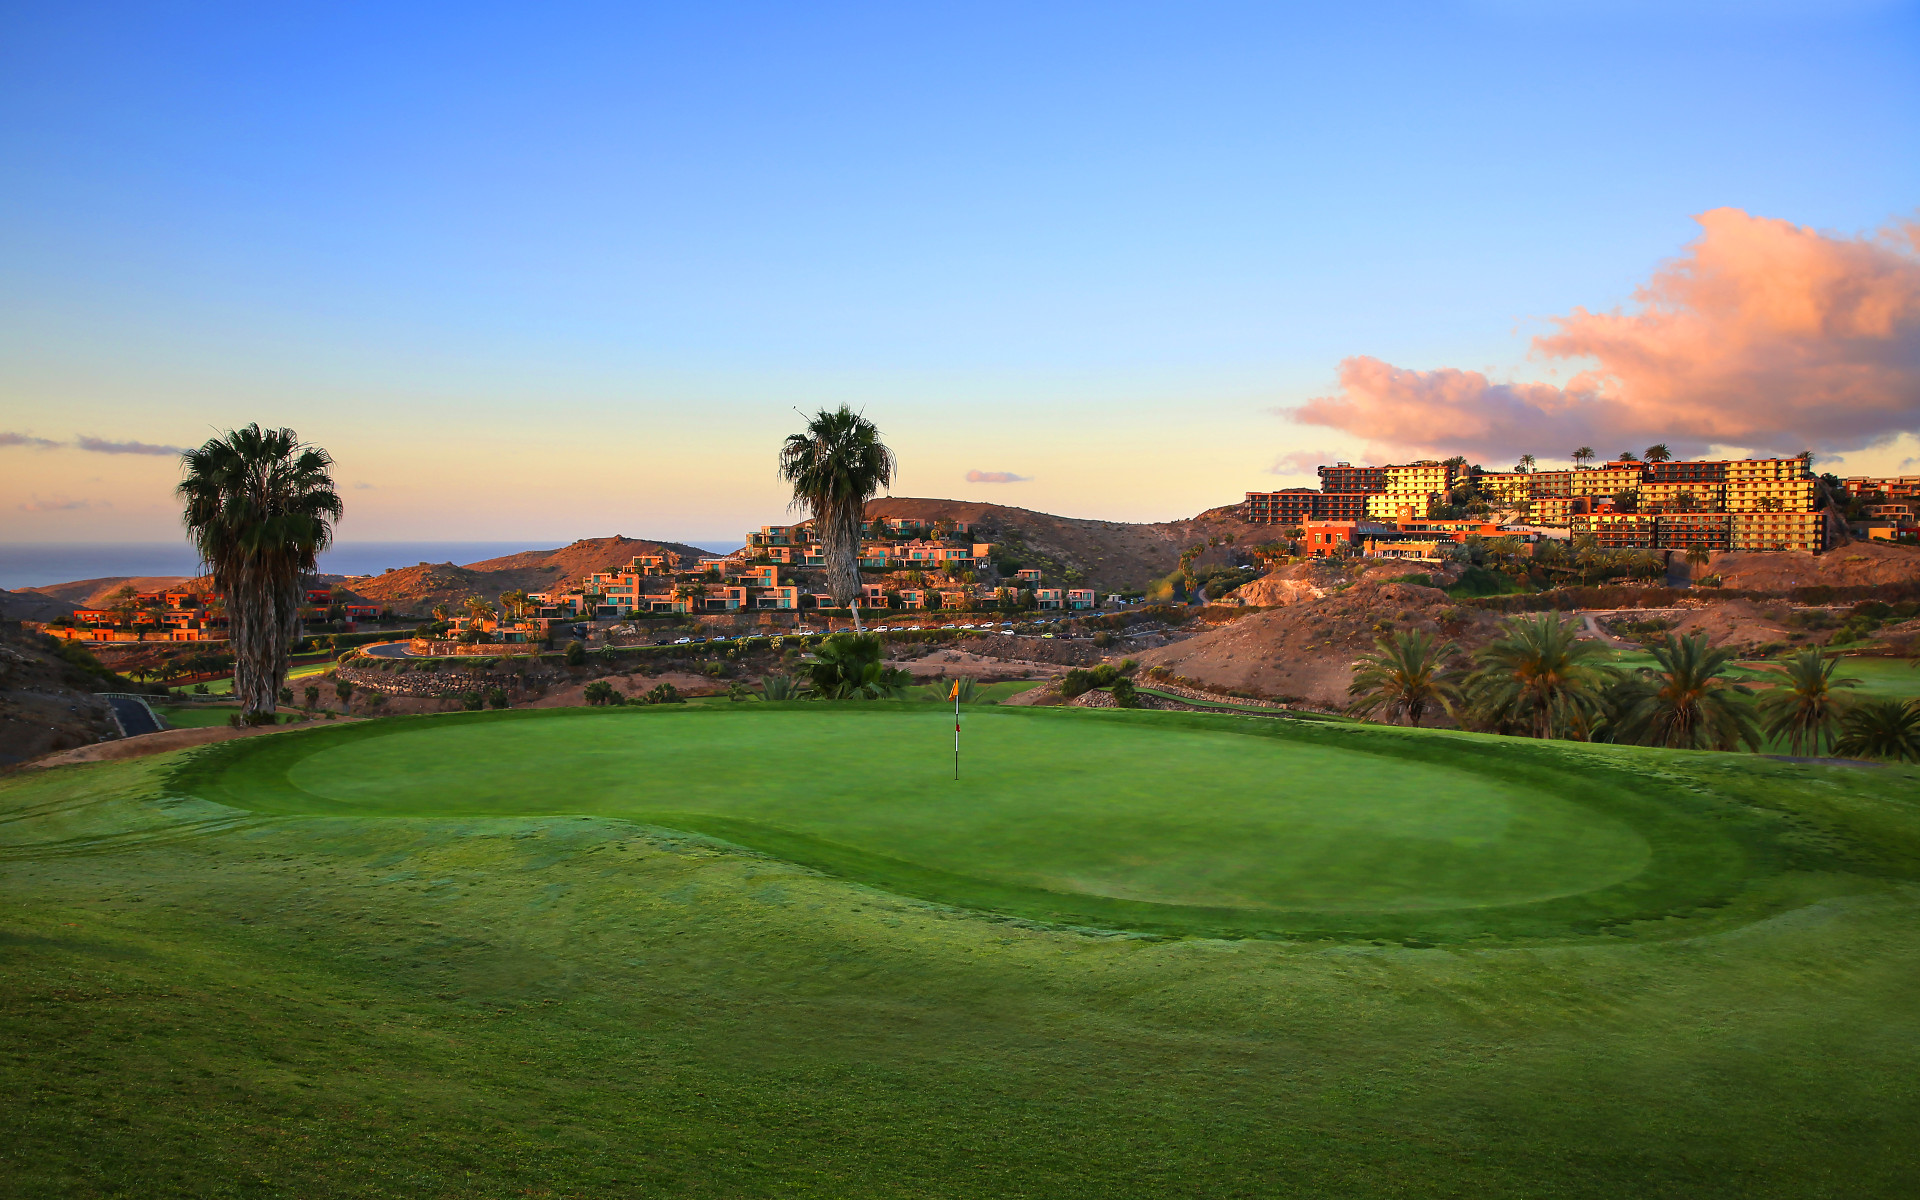 Villas Salobre Golf Resort